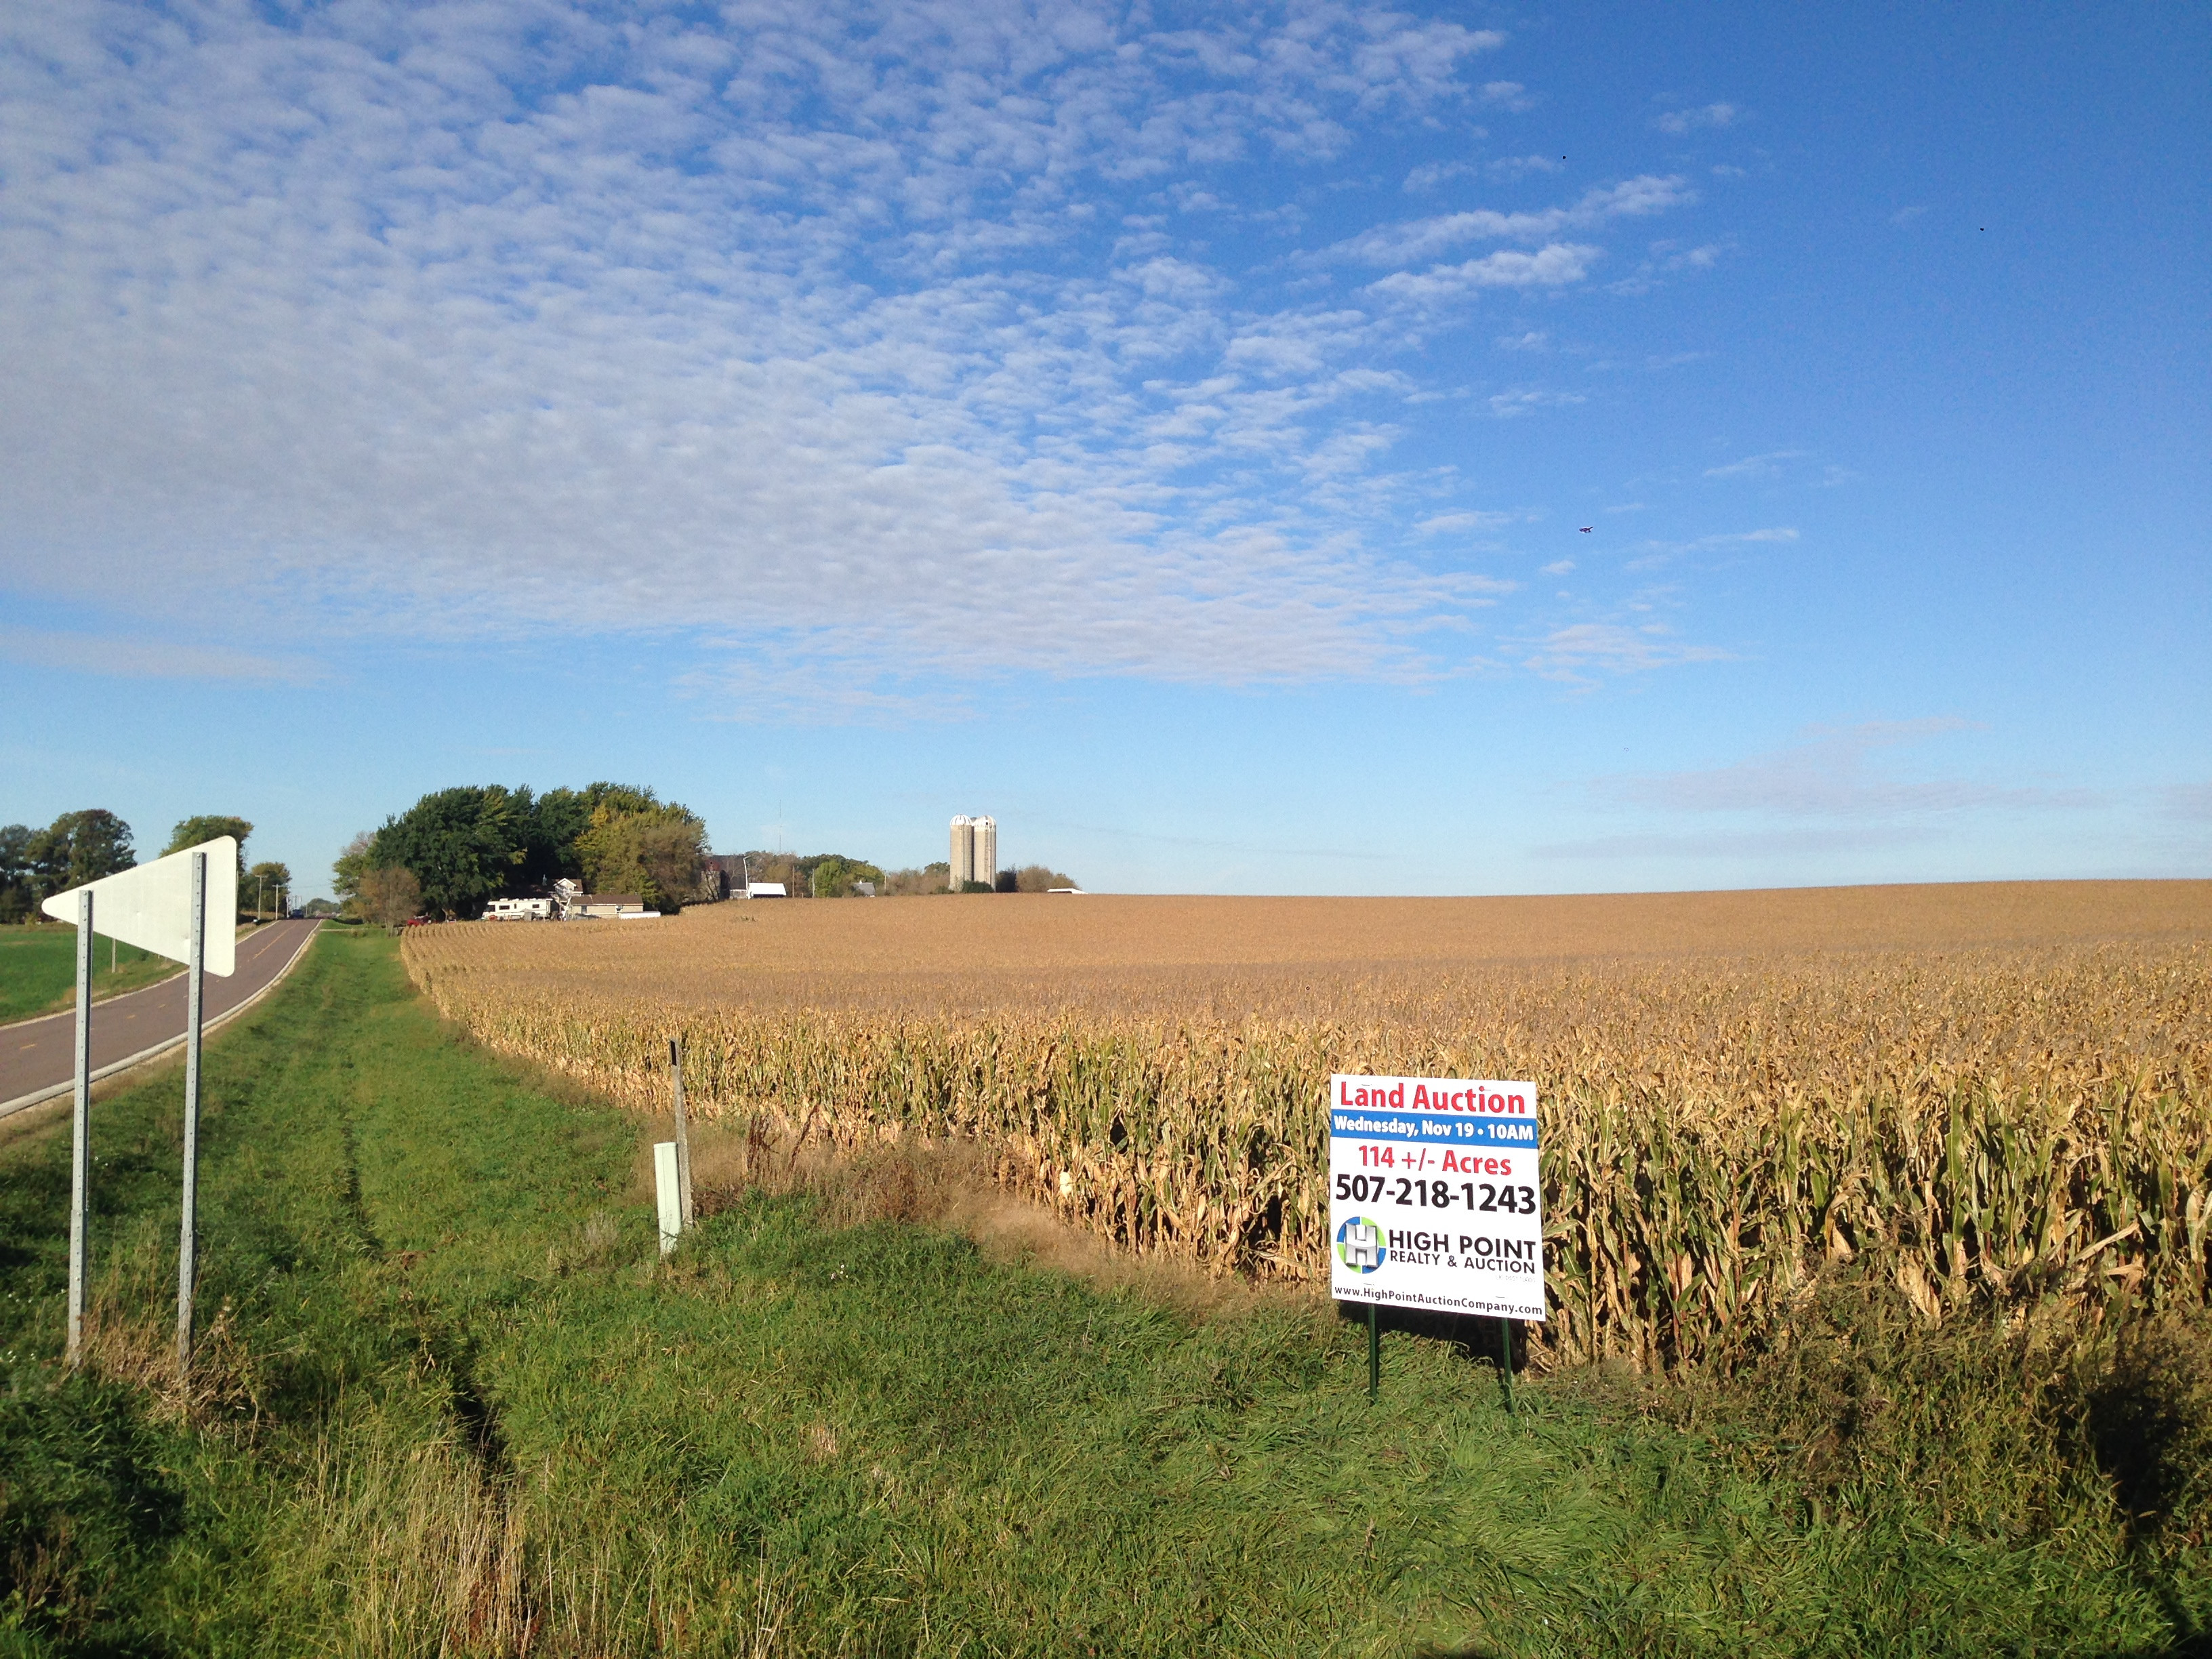 114.22 +/- Acres Highly Productive, Patterned Tile, & Blacktop Access (SOLD)